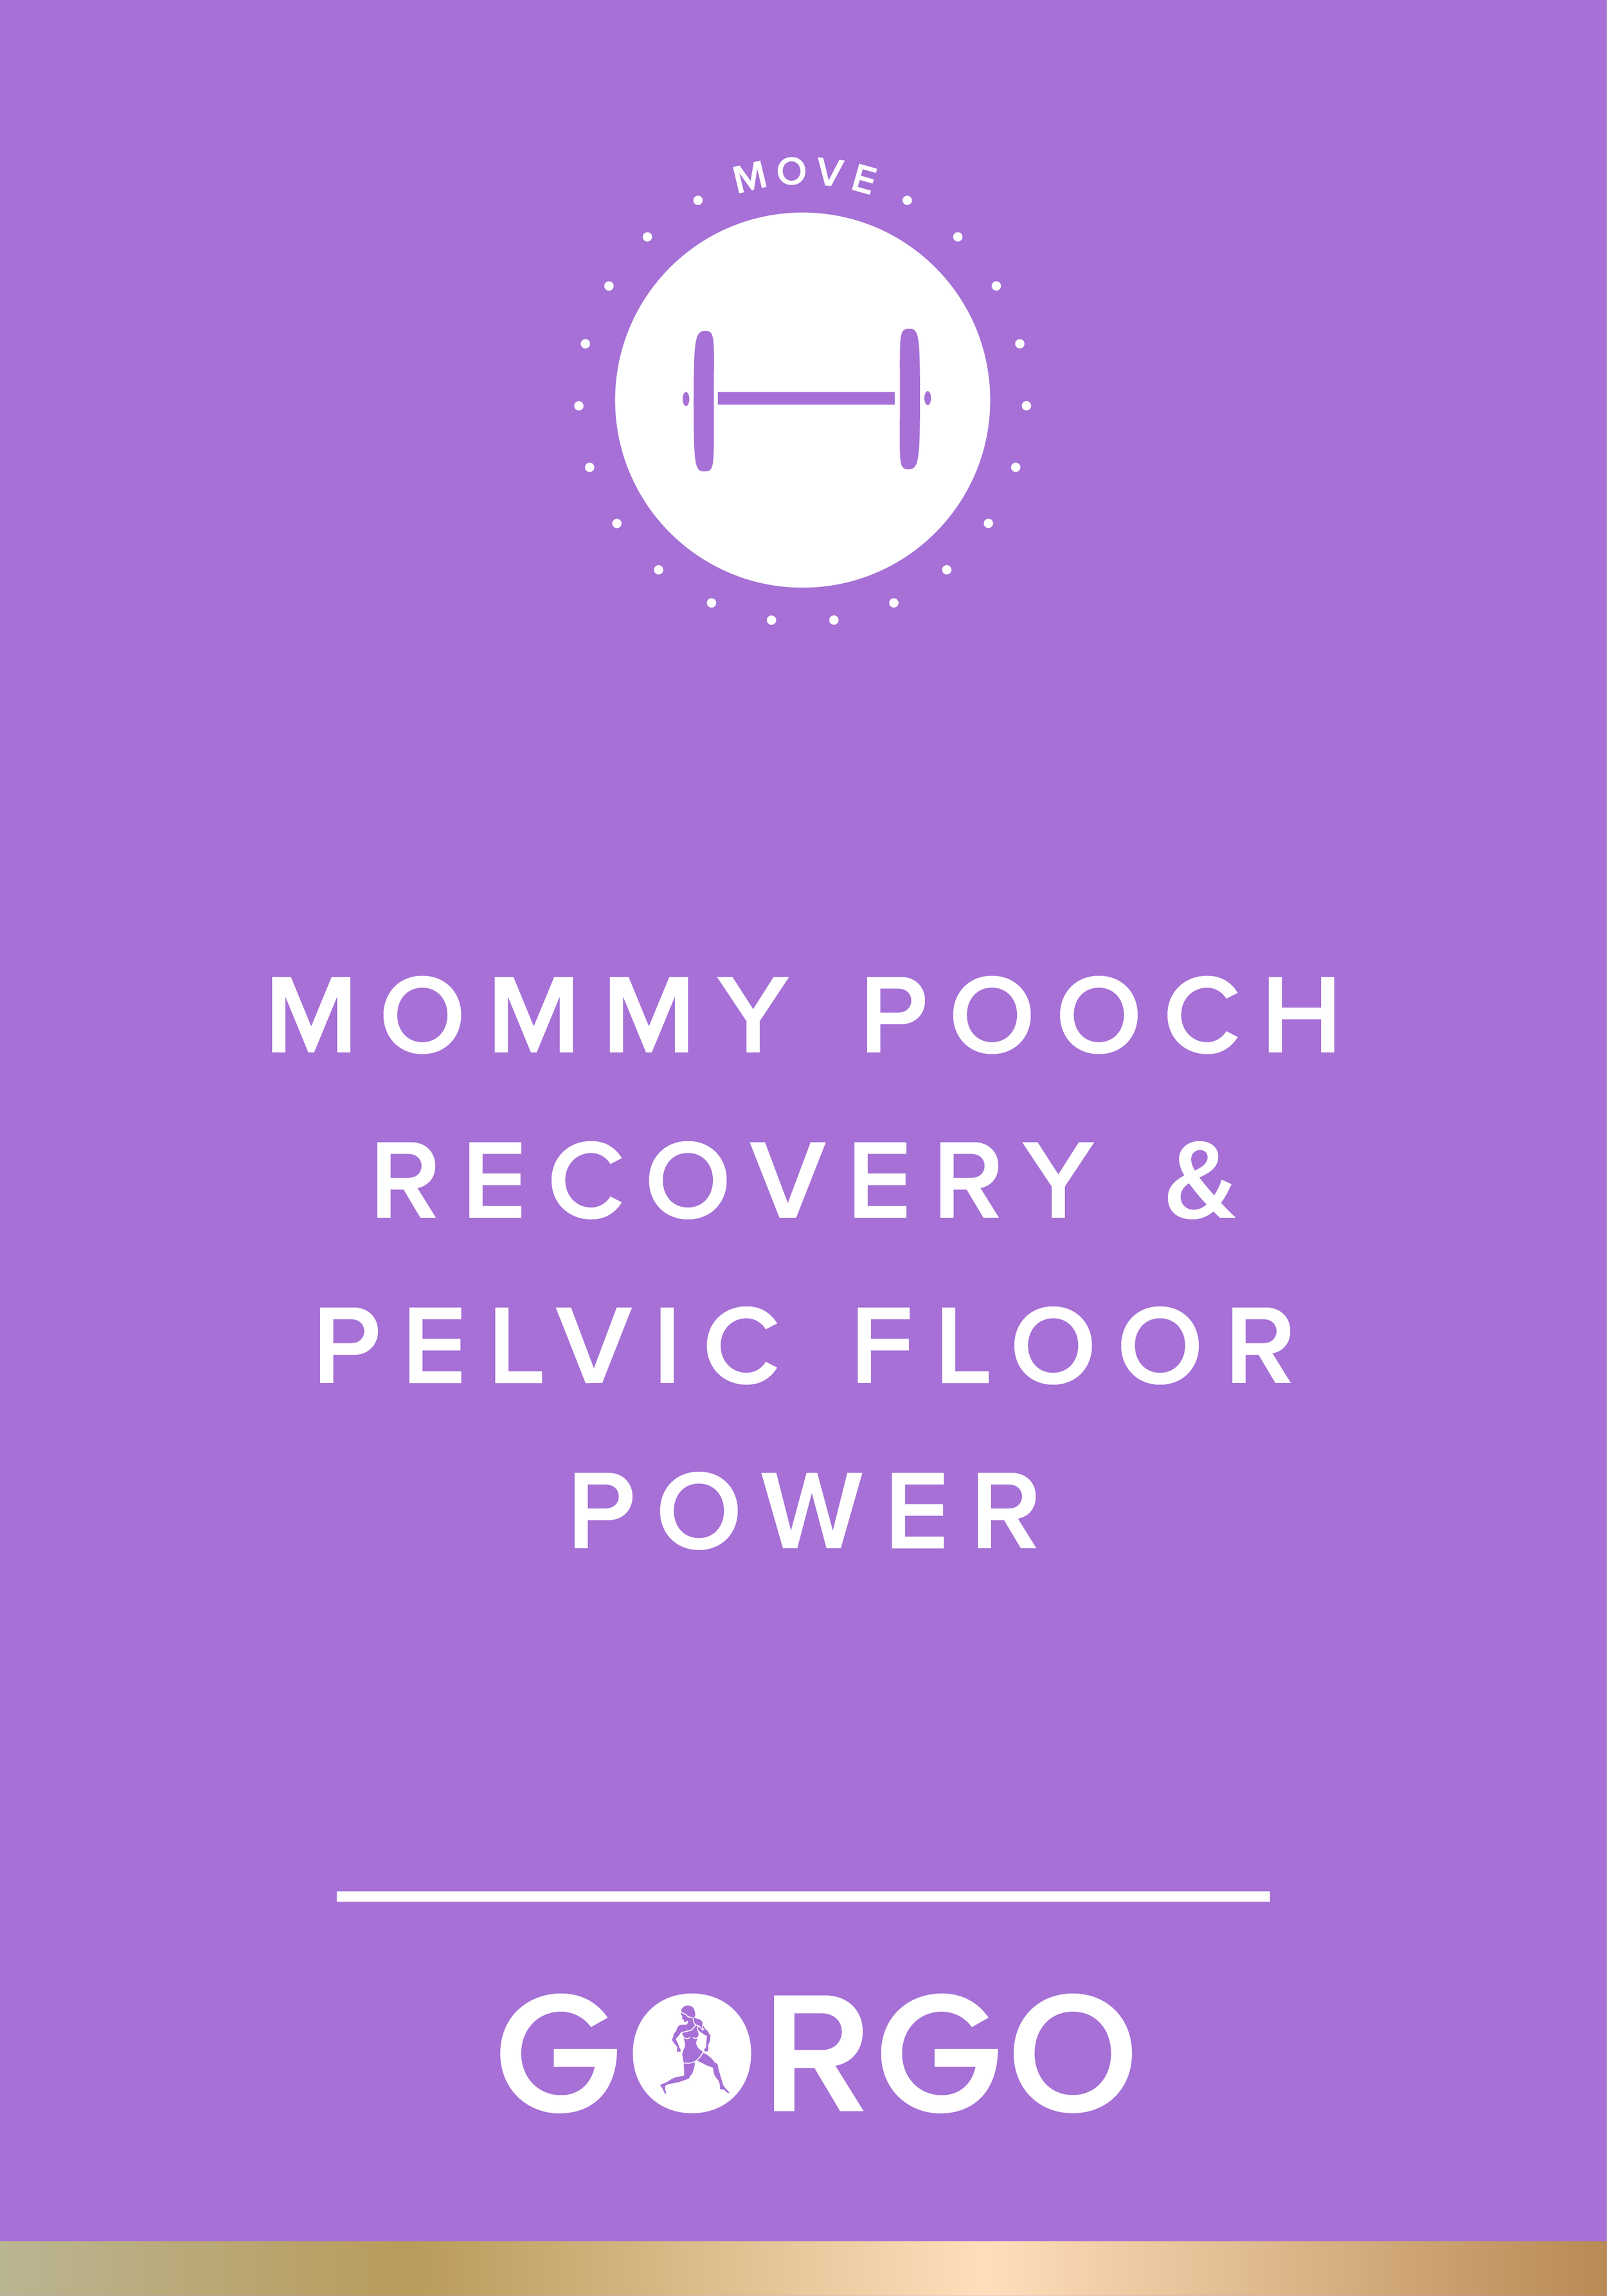 Mommy Pooch Recovery and Pelvic Floor Power